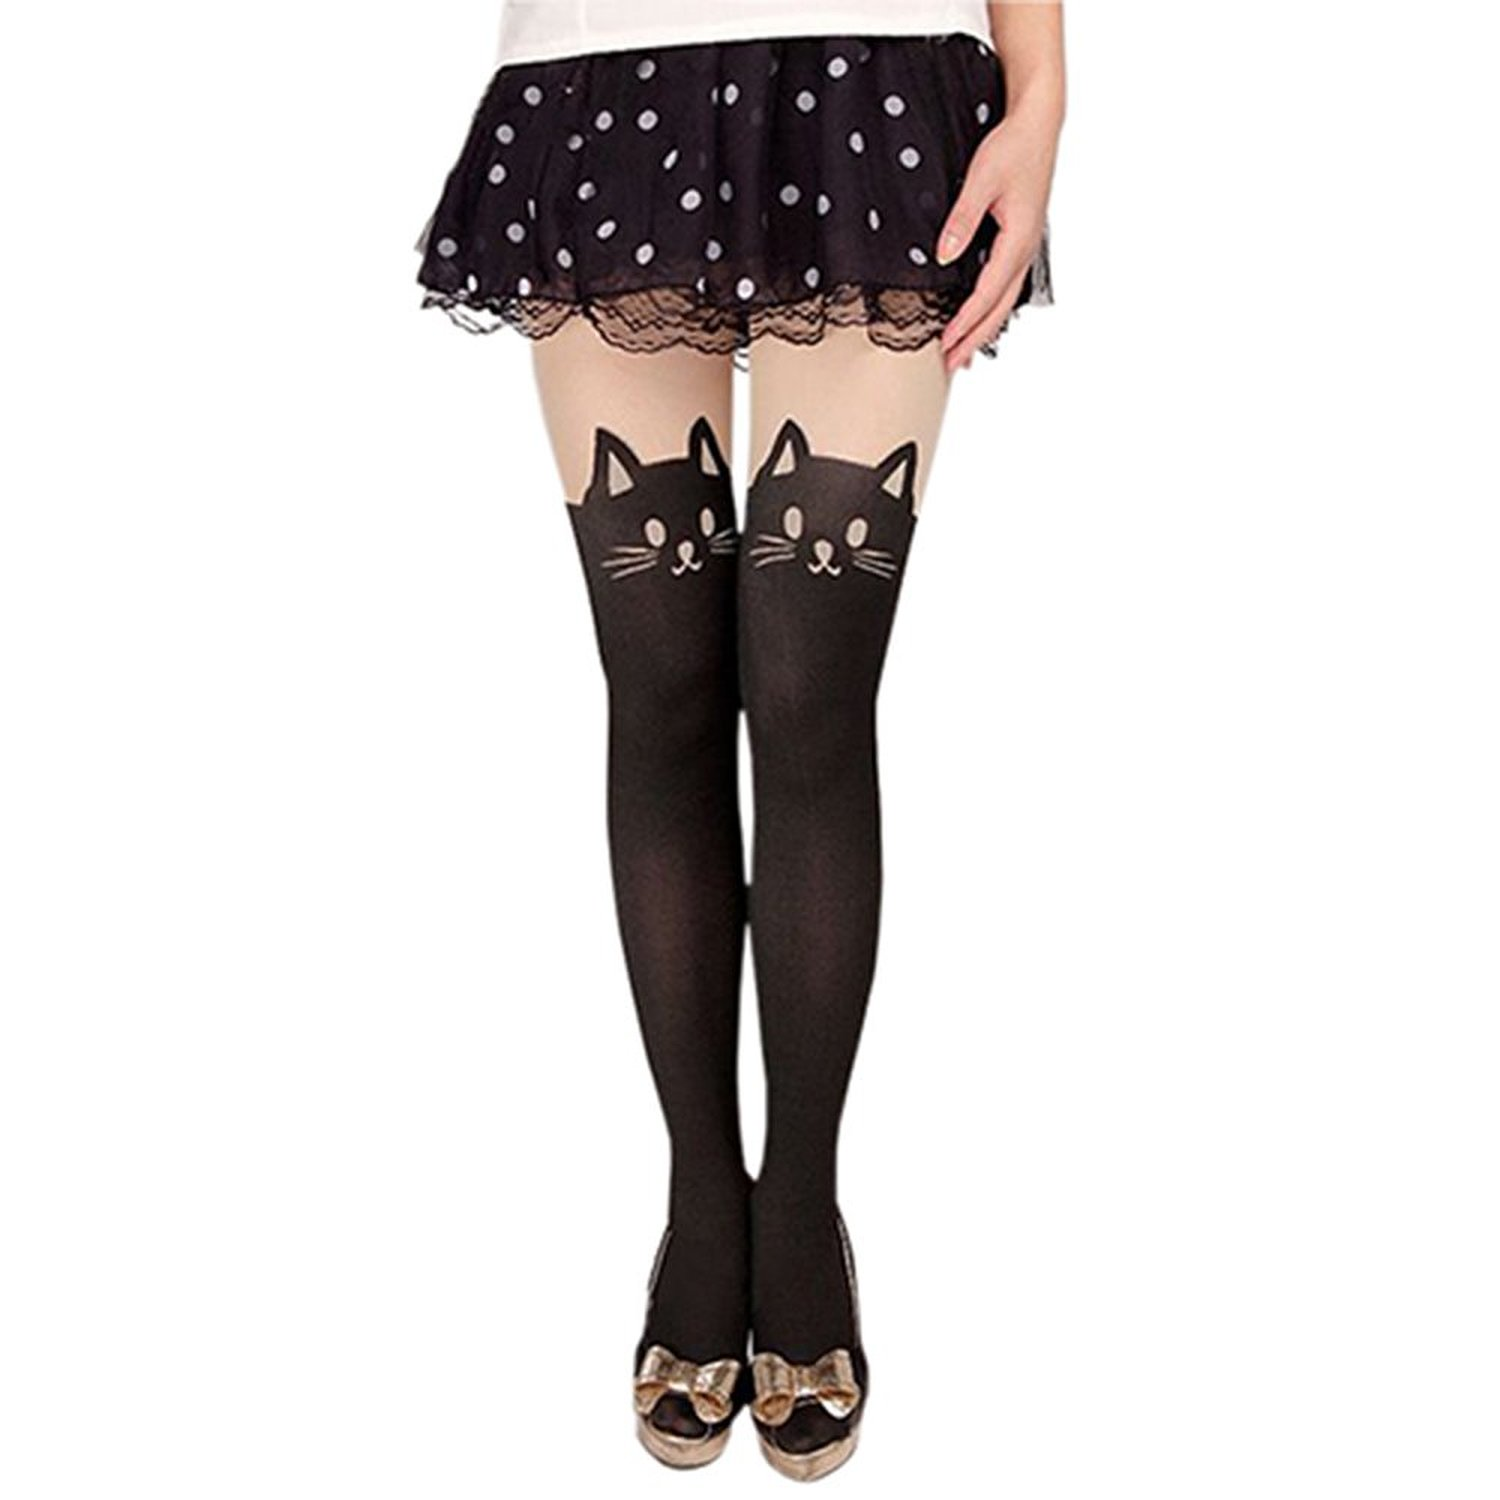 Censored Cosplay Tights Help Cosplayers Keep Their Plot Safe for Conventions4